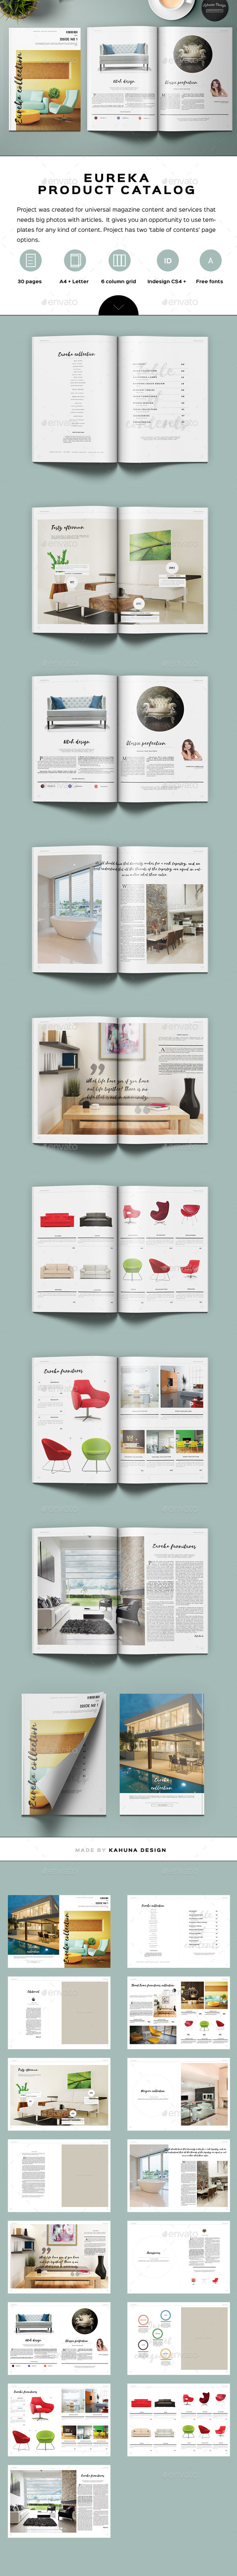 Eureka Product Catalog Design - Catalogs Brochures